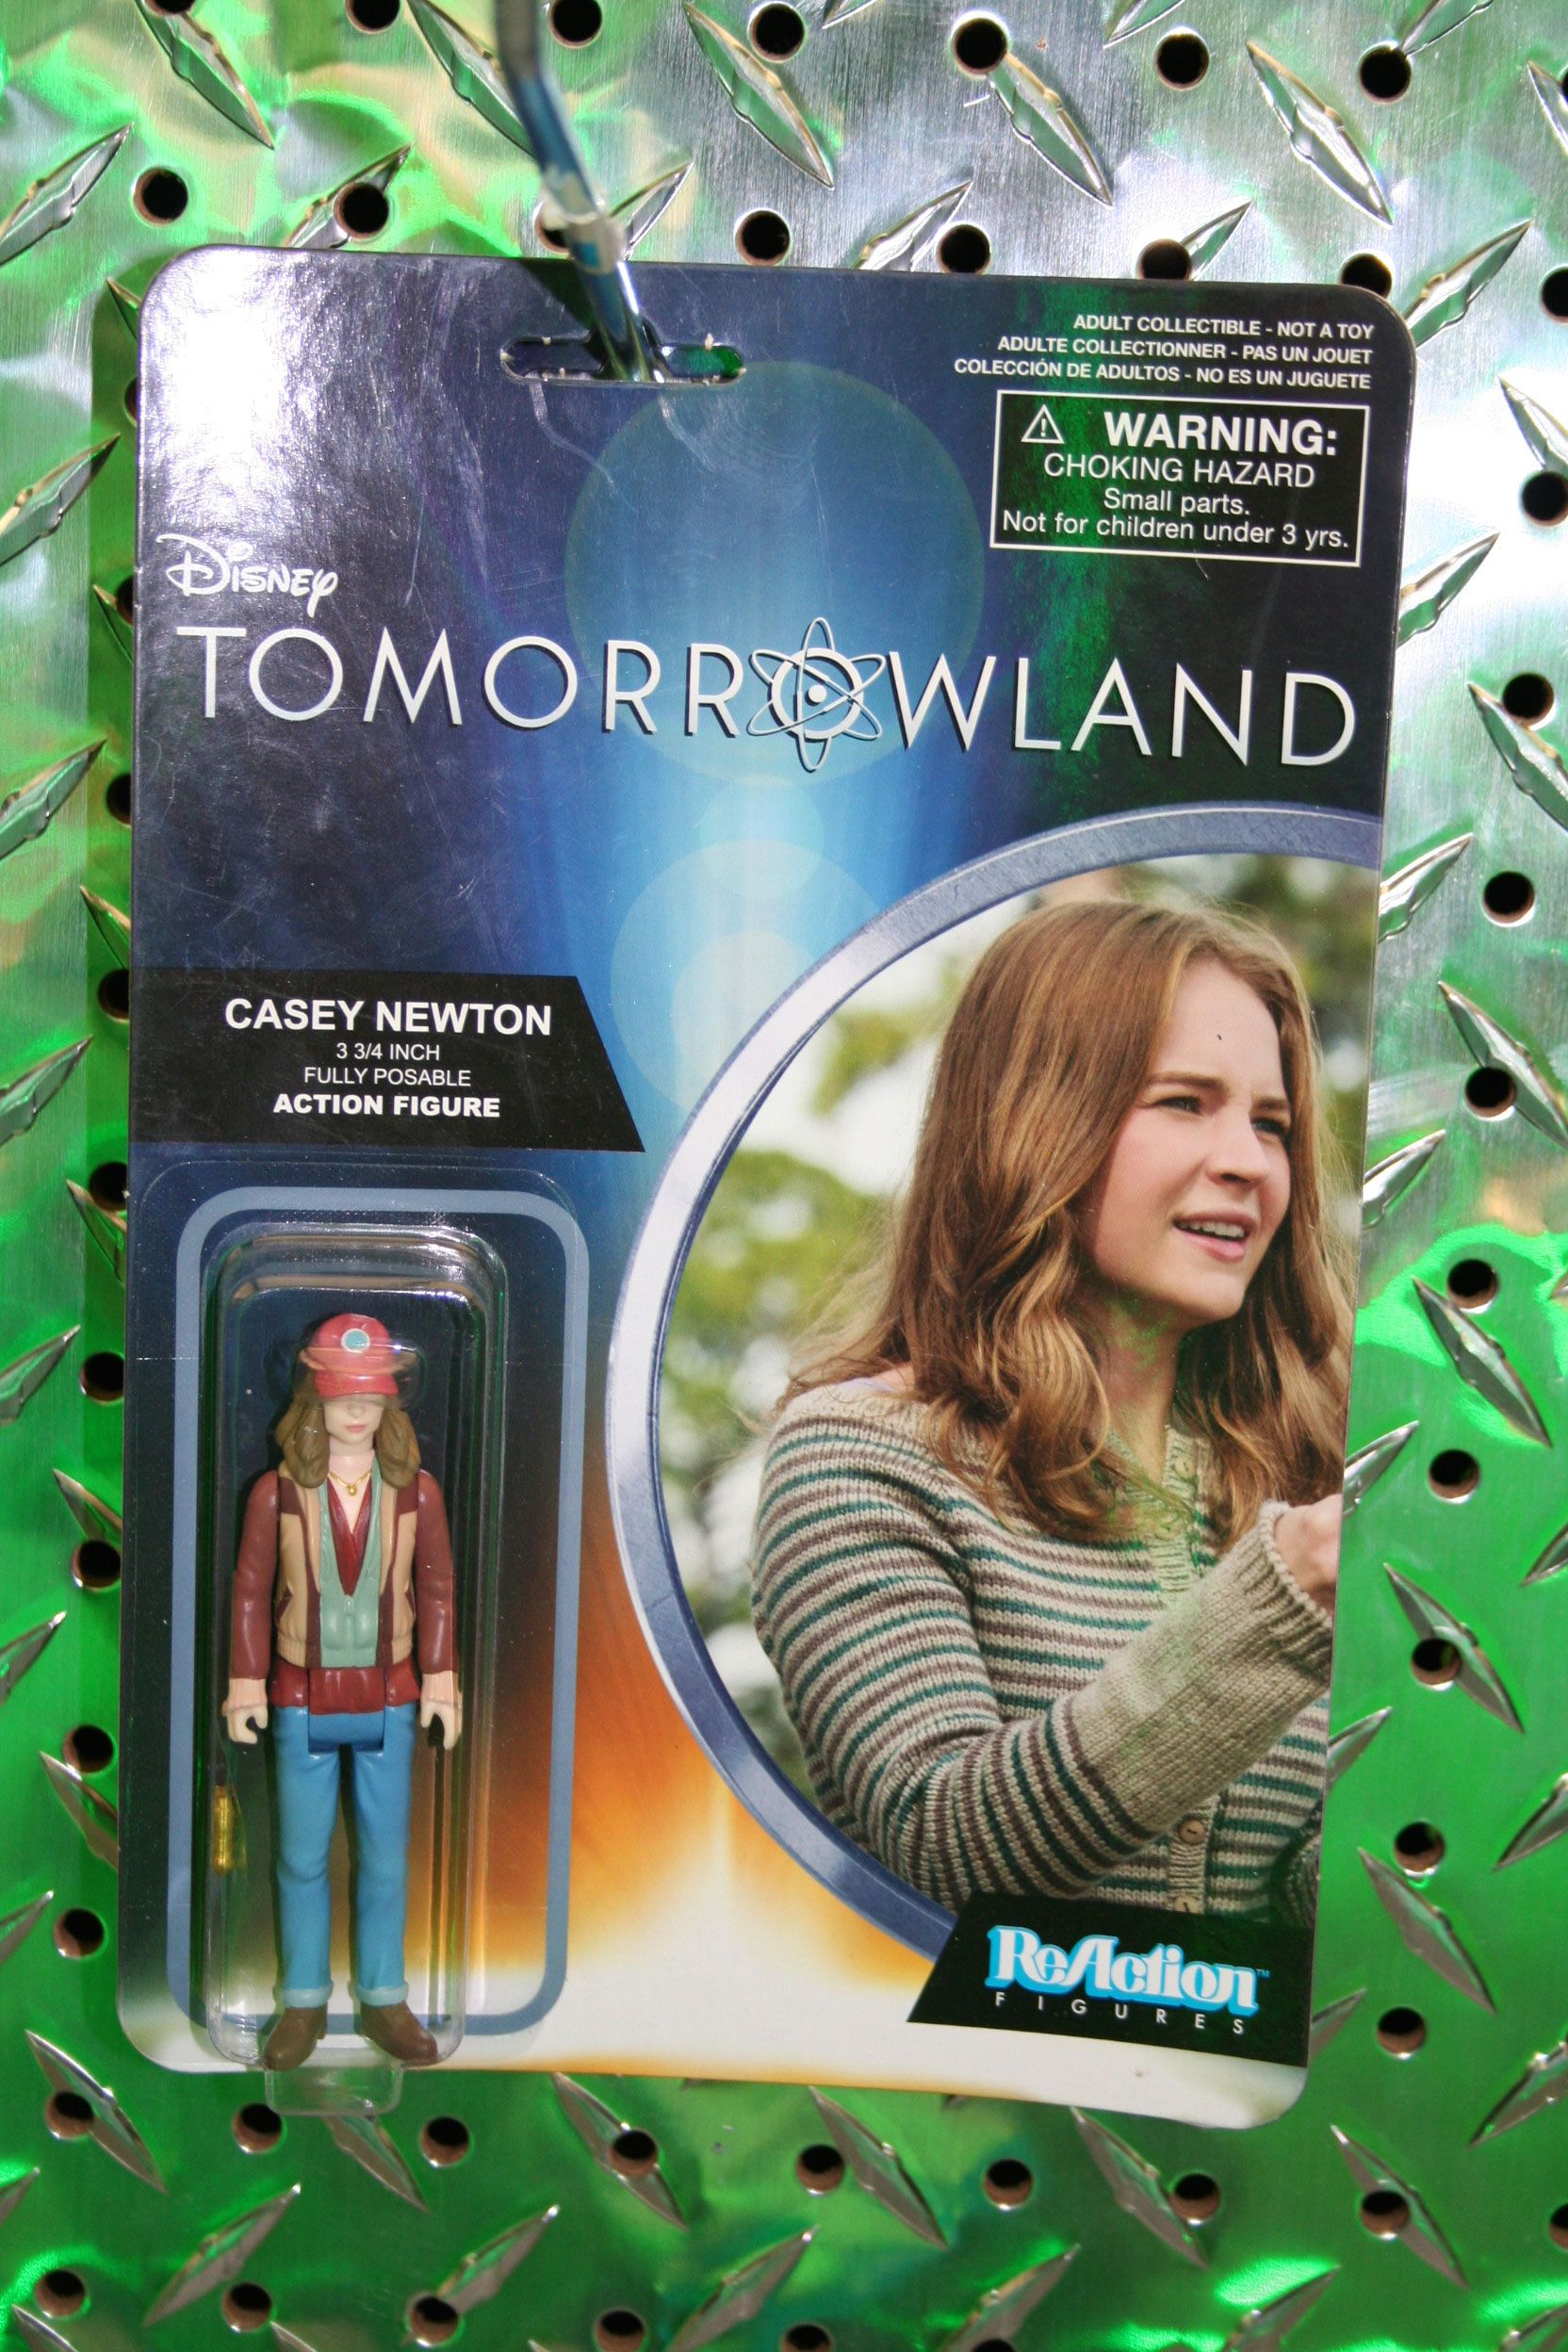 Tomorrowland Action Figures Revealed at Toy Fair | Collider